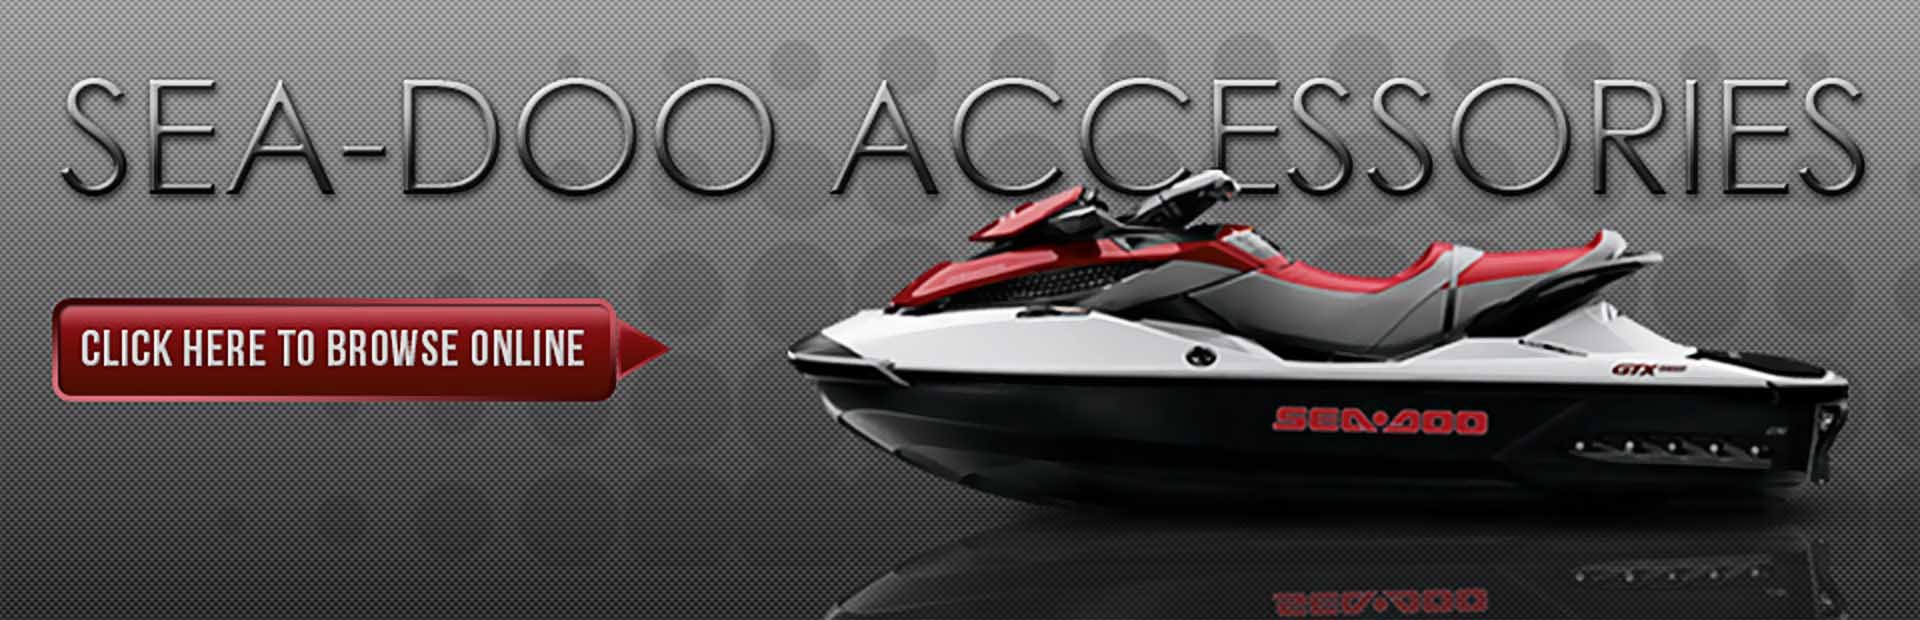 Sea-Doo Accessories: Click here to browse online.